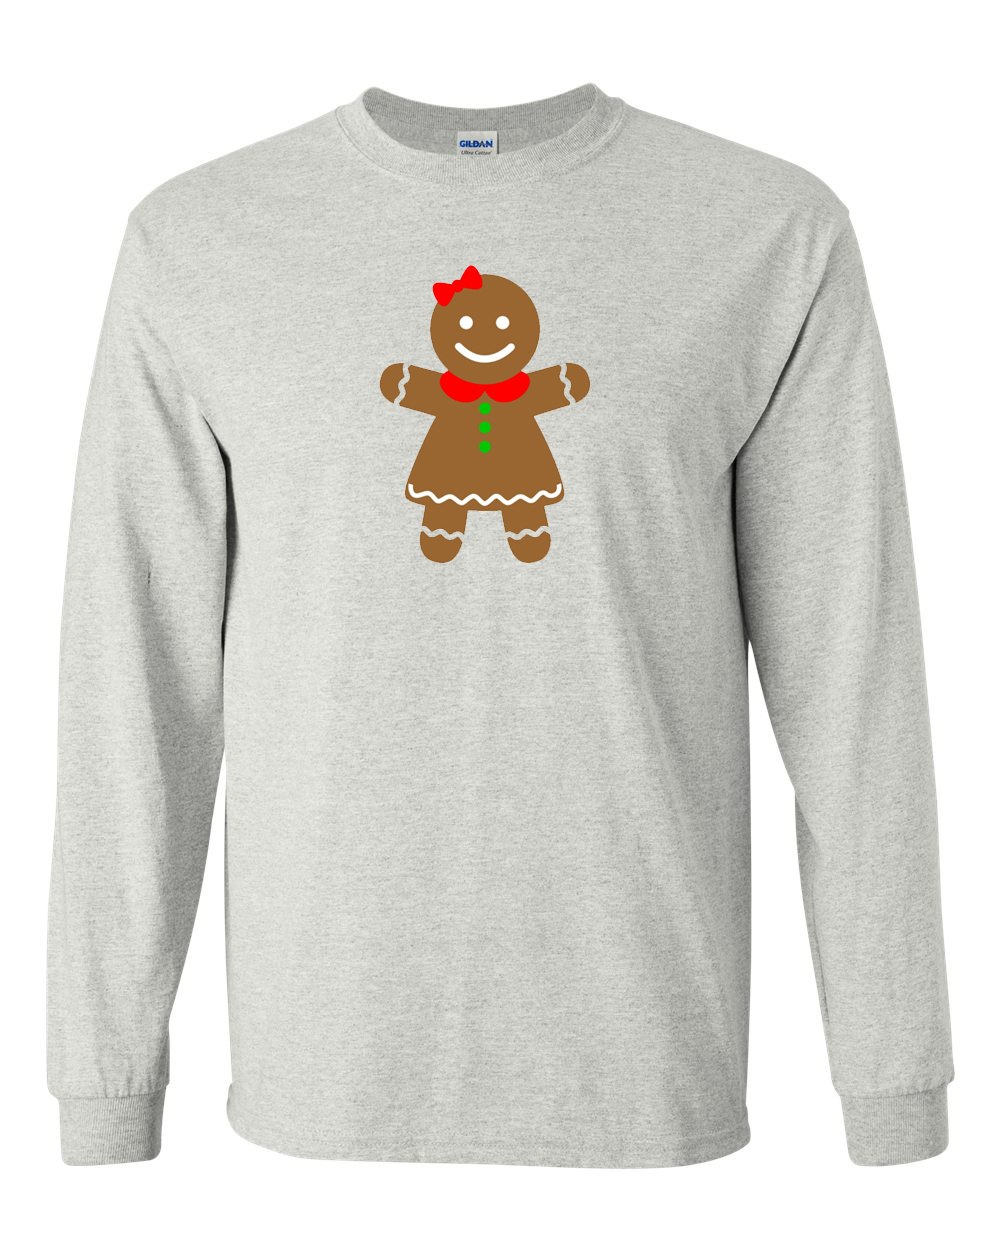 Gingerbread Girl Long Sleeve T-shirt